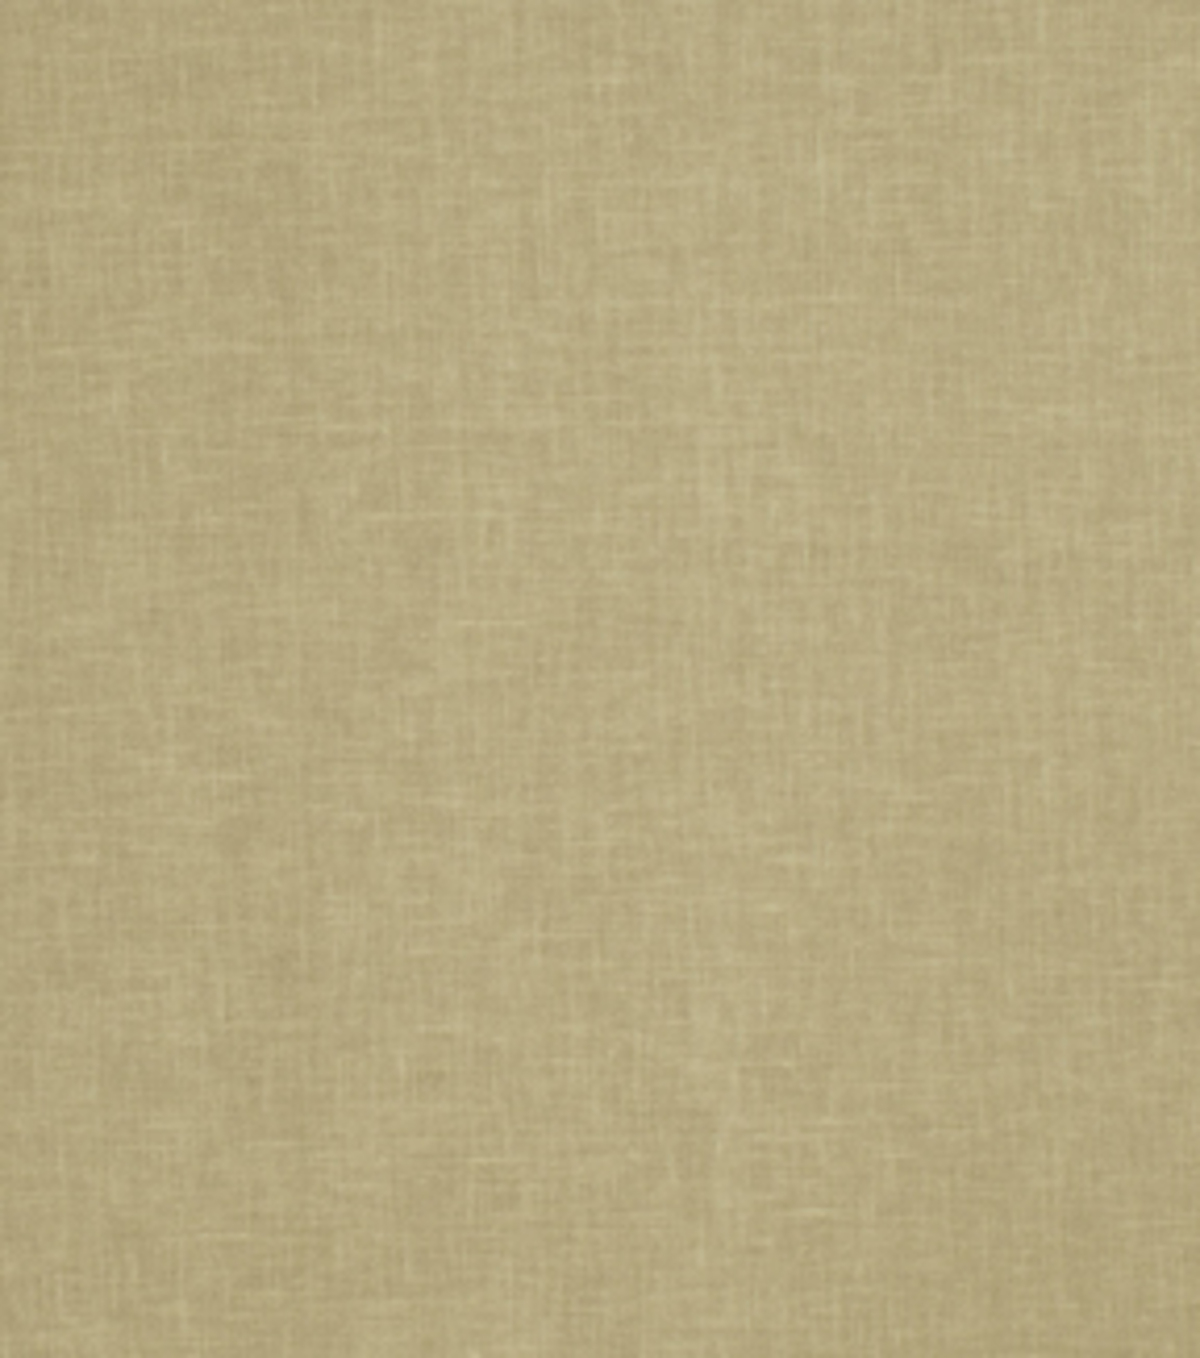 Home Decor 8\u0022x8\u0022 Fabric Swatch-Eaton Square Bannister Willow